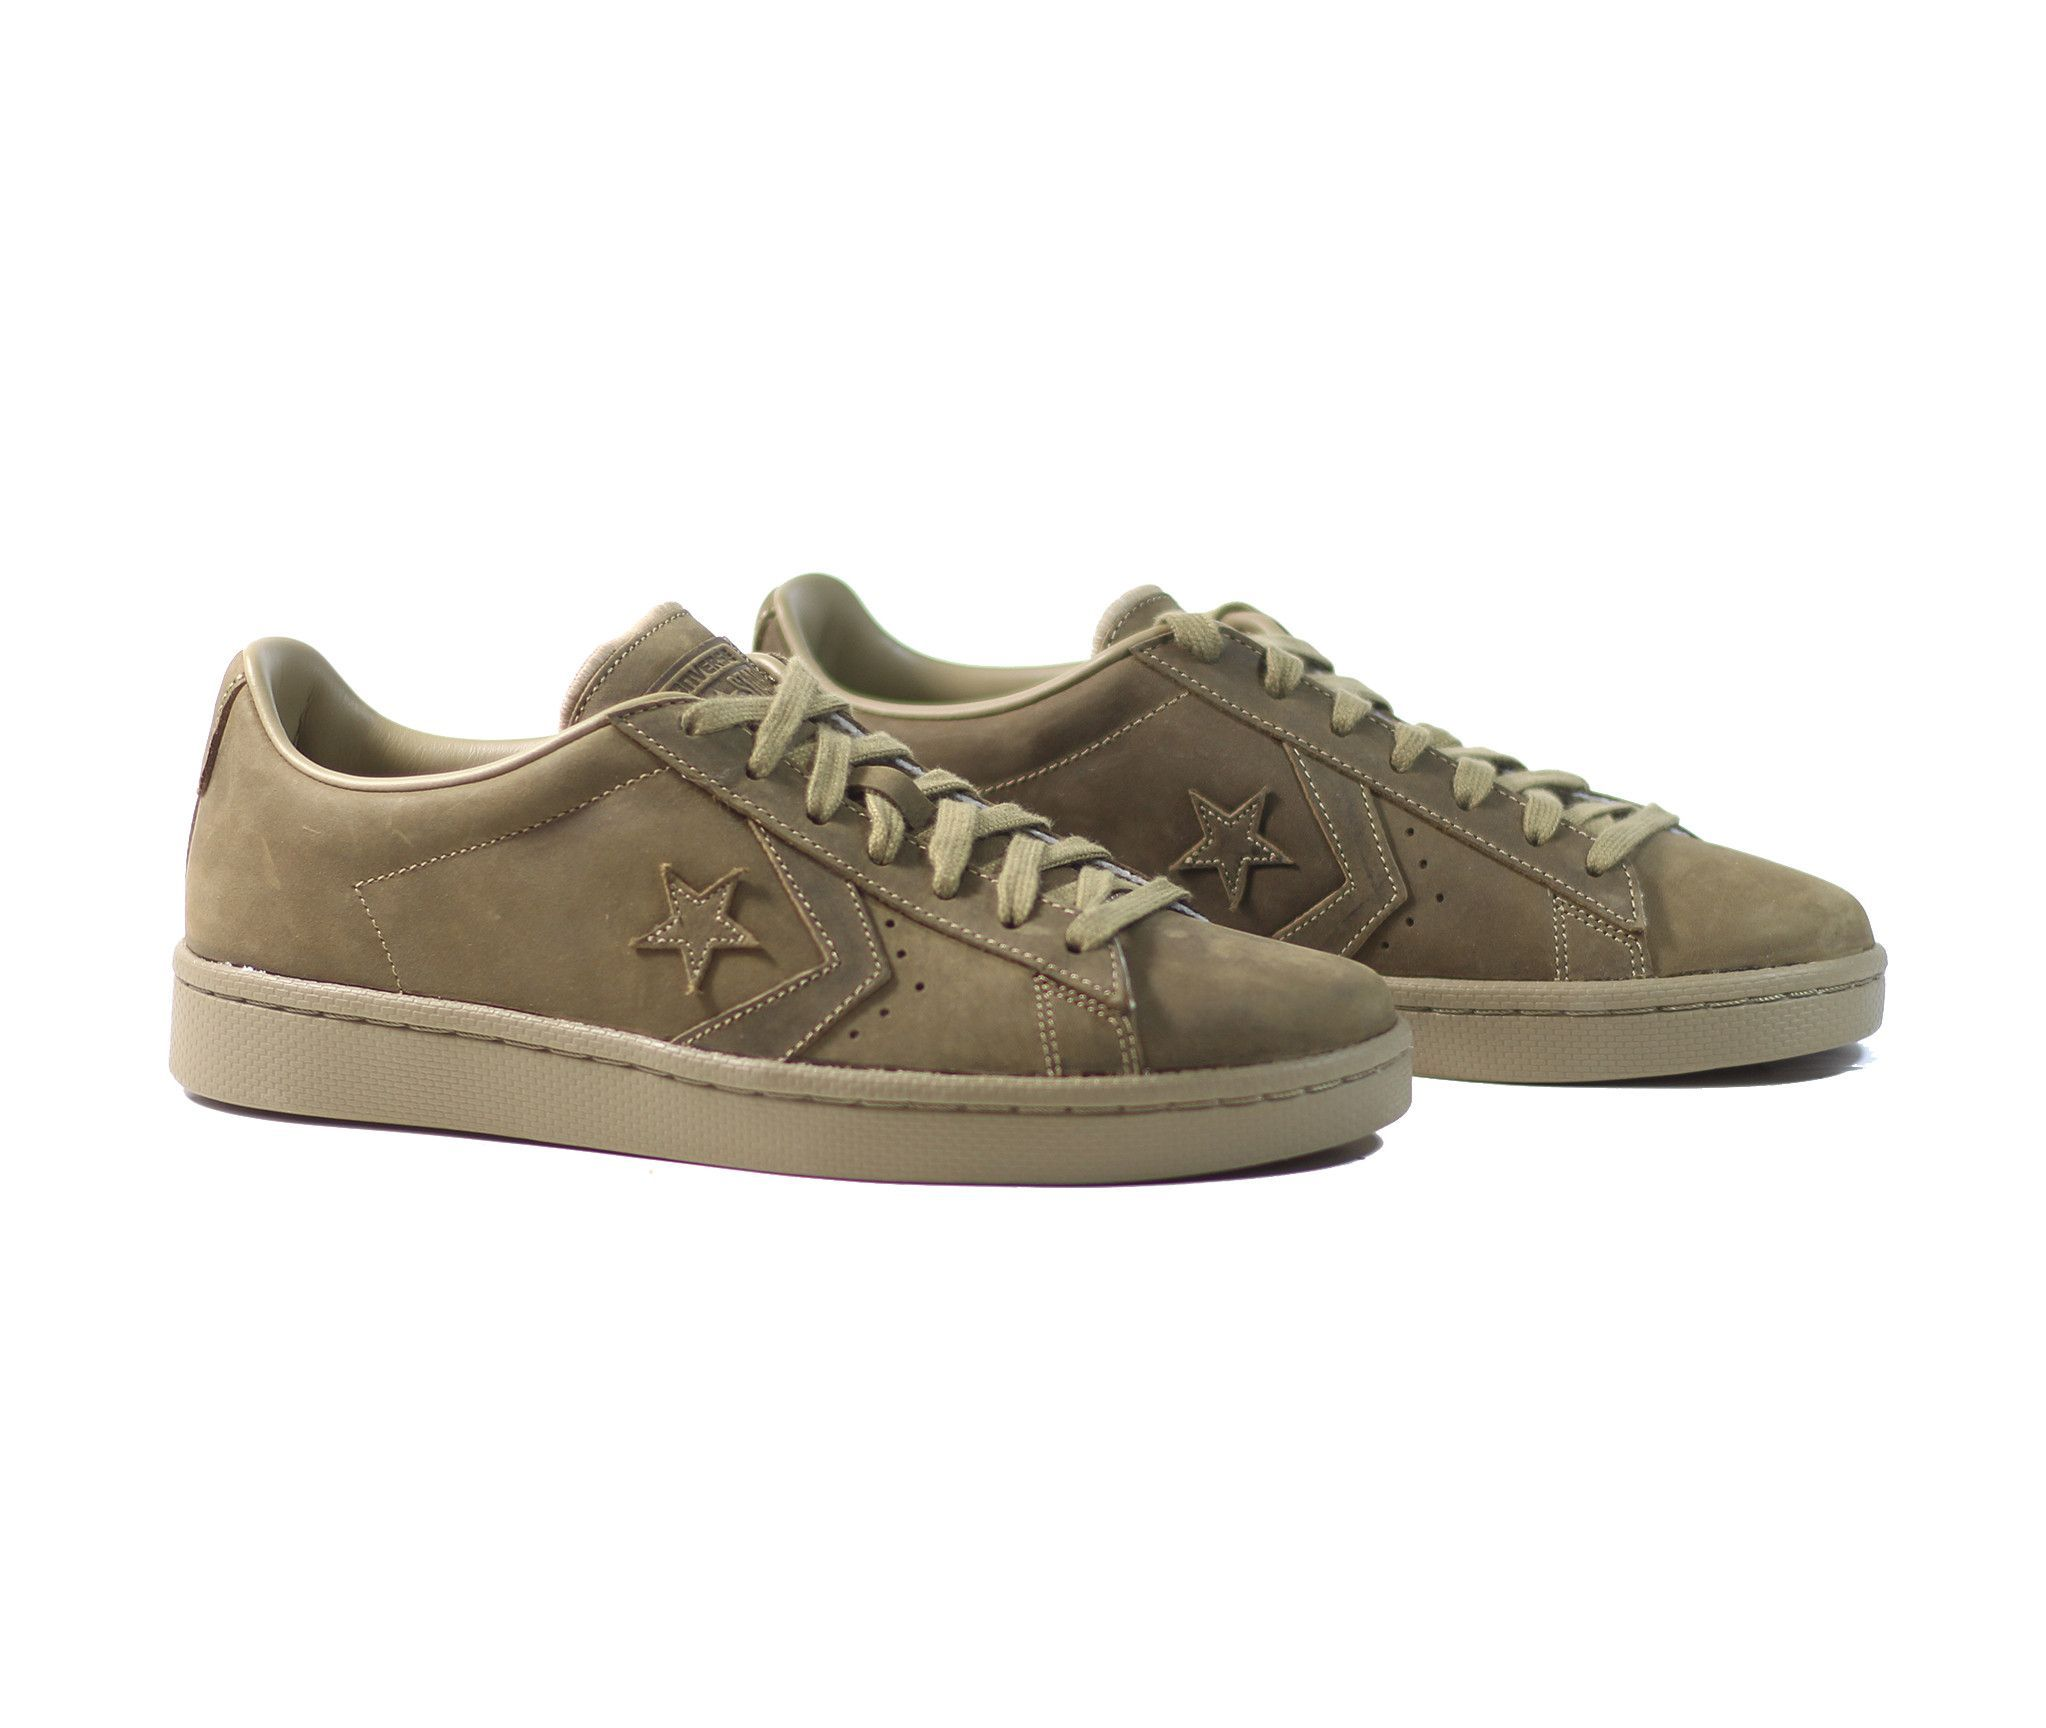 8fcf3378d062 Converse Pro Leather 76 OX - Khaki